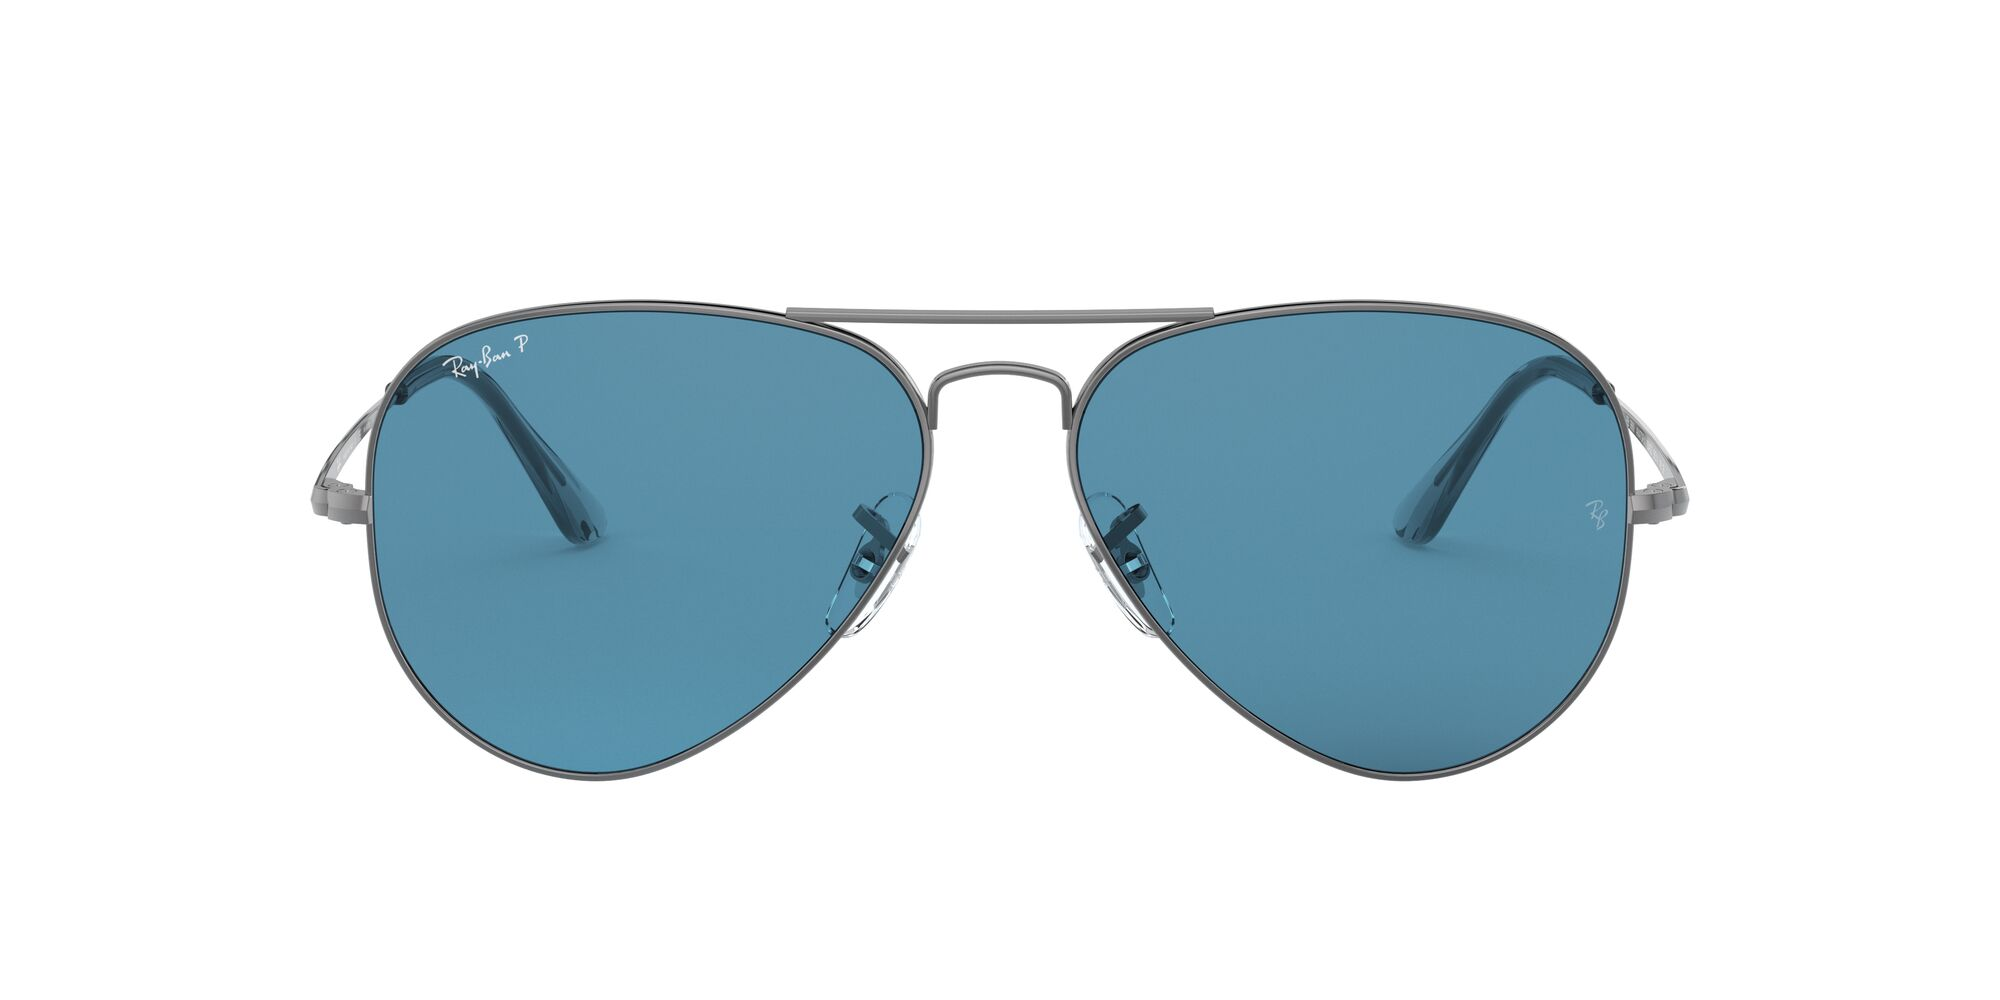 Front Ray-Ban Ray-Ban 0RB3689 004/S2 54/14 Zilver/Blauw